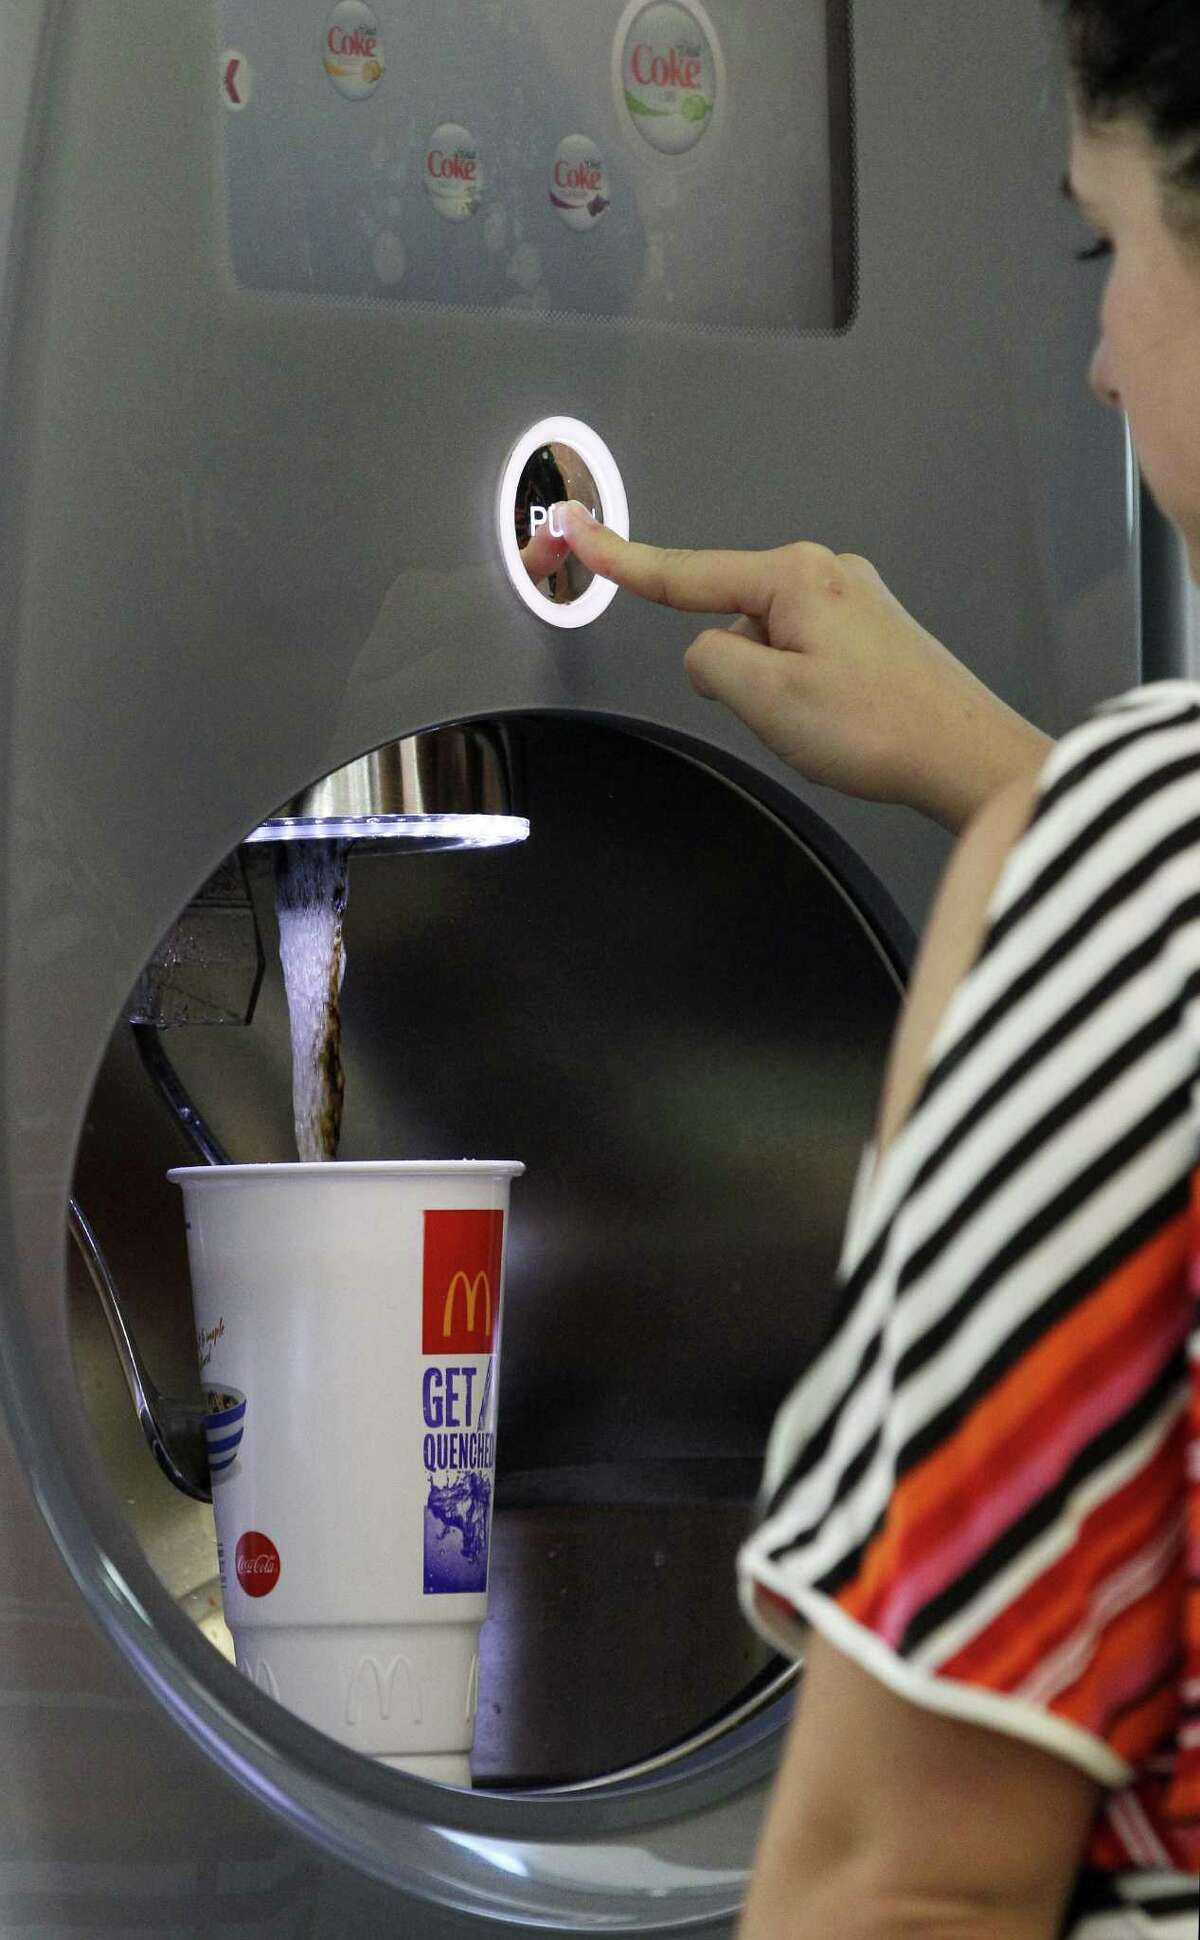 Christina Nunez fills a cup at a fast-food restaurant in New York. Nationally, more than half of front-line fast-food workers' families use at least one public assistance program.